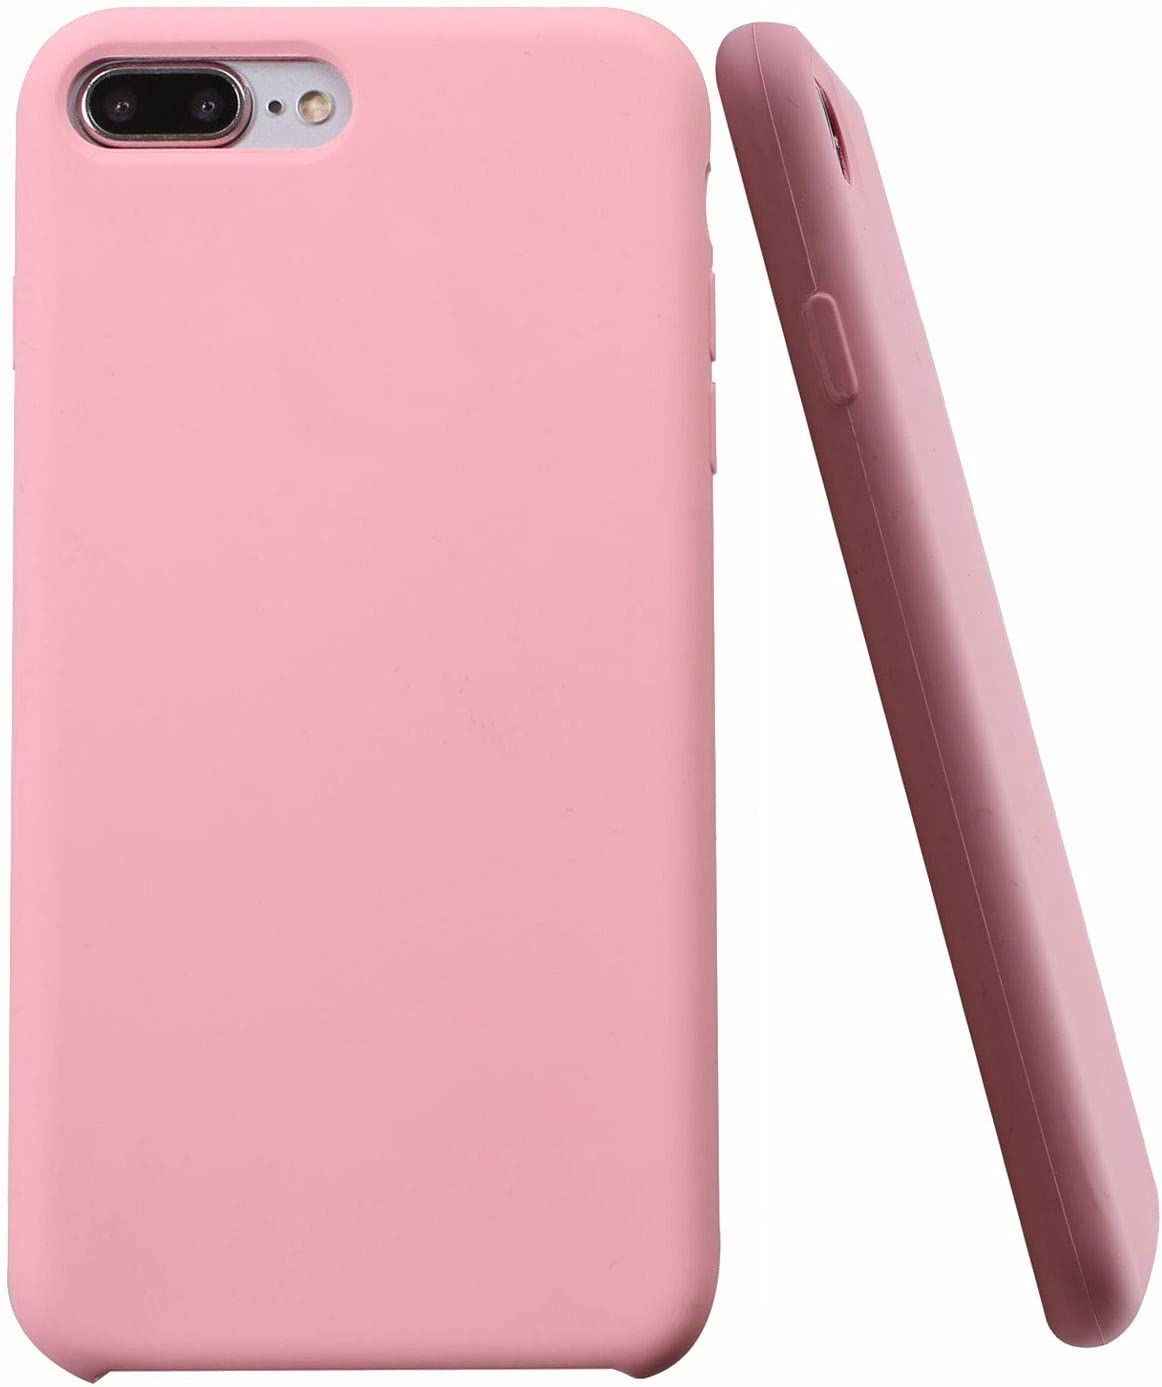 Soft Liquid Silicone iPhone 8 Plus Cover Case Inner Soft Microfiber Cloth Lining Cushion for Apple iPhone 7 Plus/iPhone 8 Plus (Light Pink)